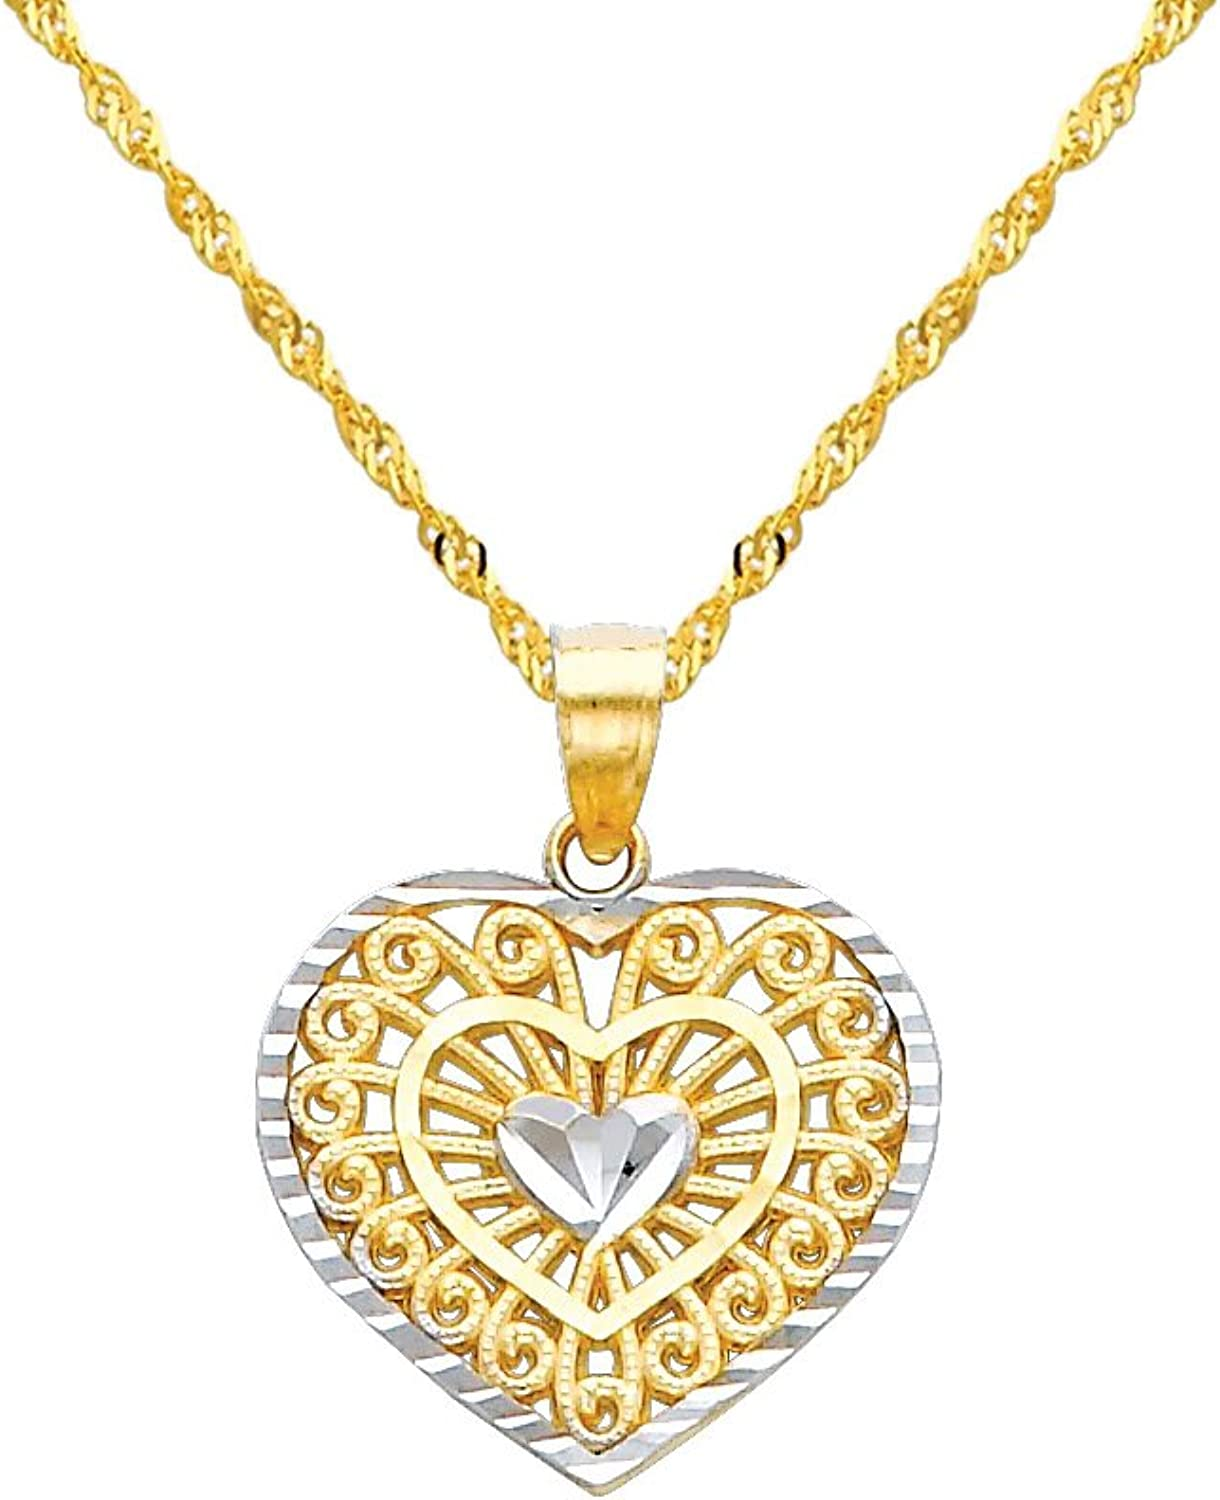 14k Two Tone gold Heart Charm Pendant with 1.2mm Singapore Chain Necklace